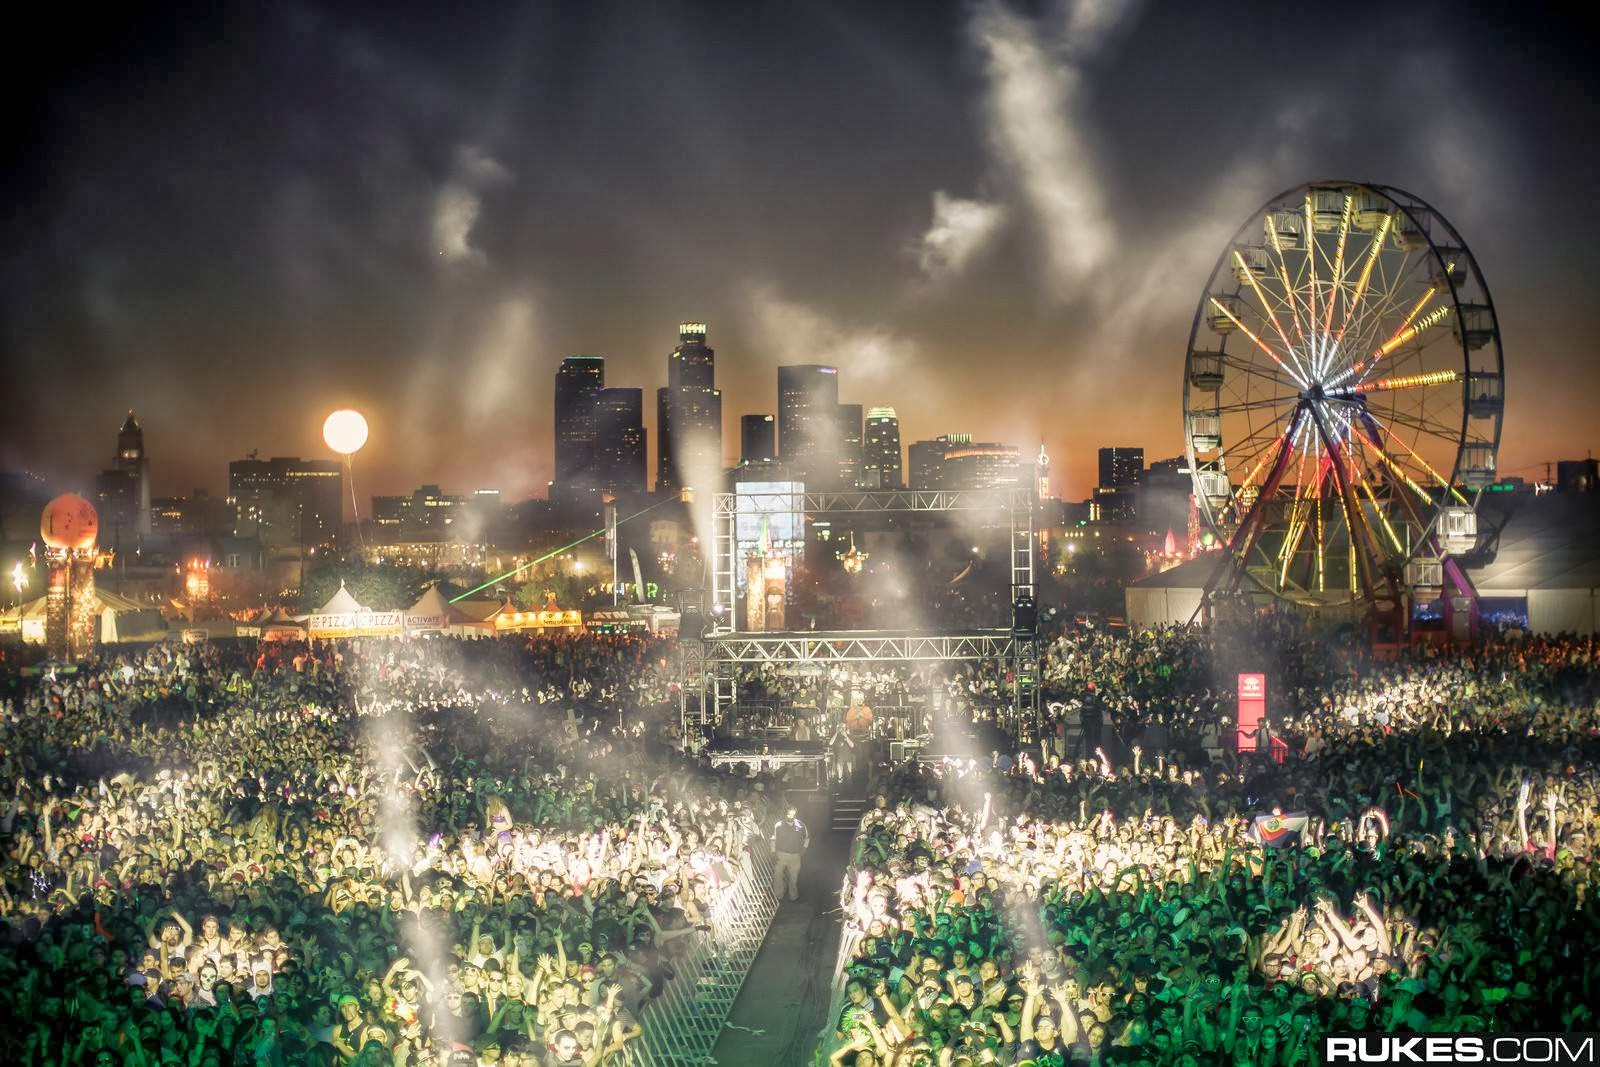 What Do Insomniac & Zedd Have Planned for LA State Historic Park?